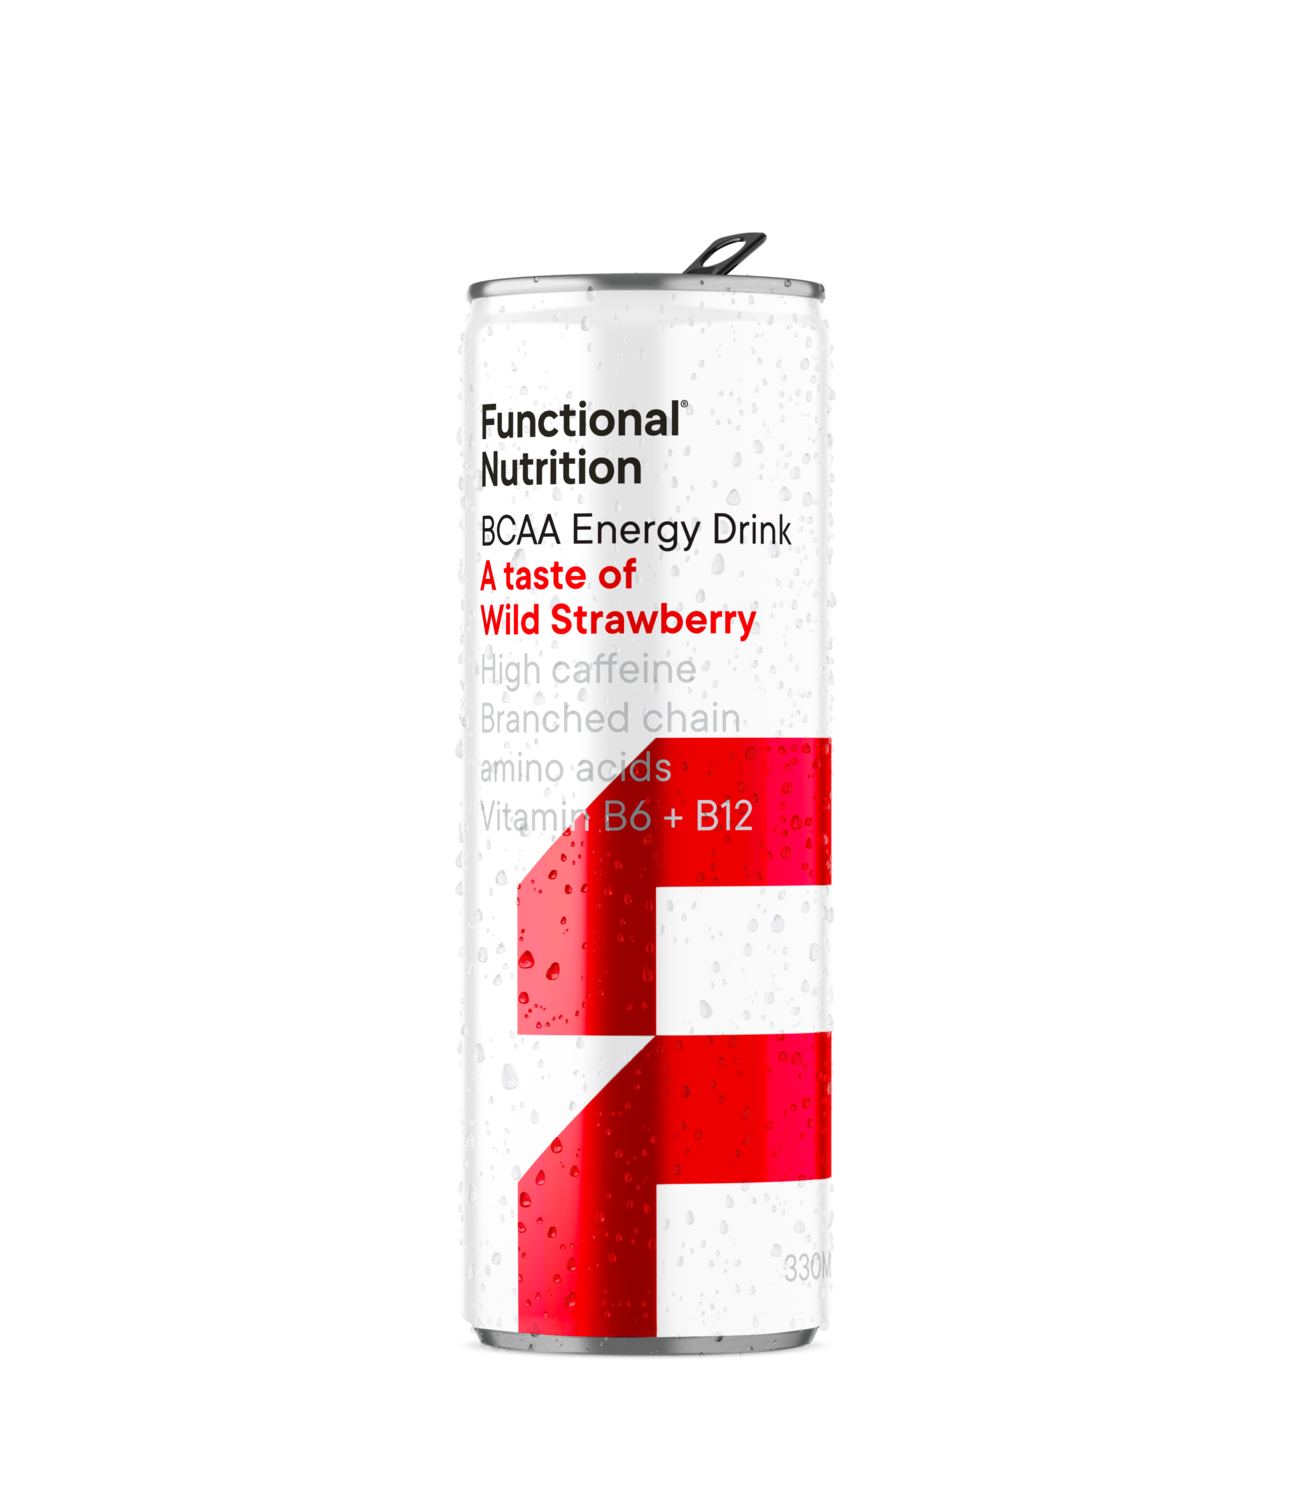 BCAA Energy Drink 330ml - Wild Strawberry